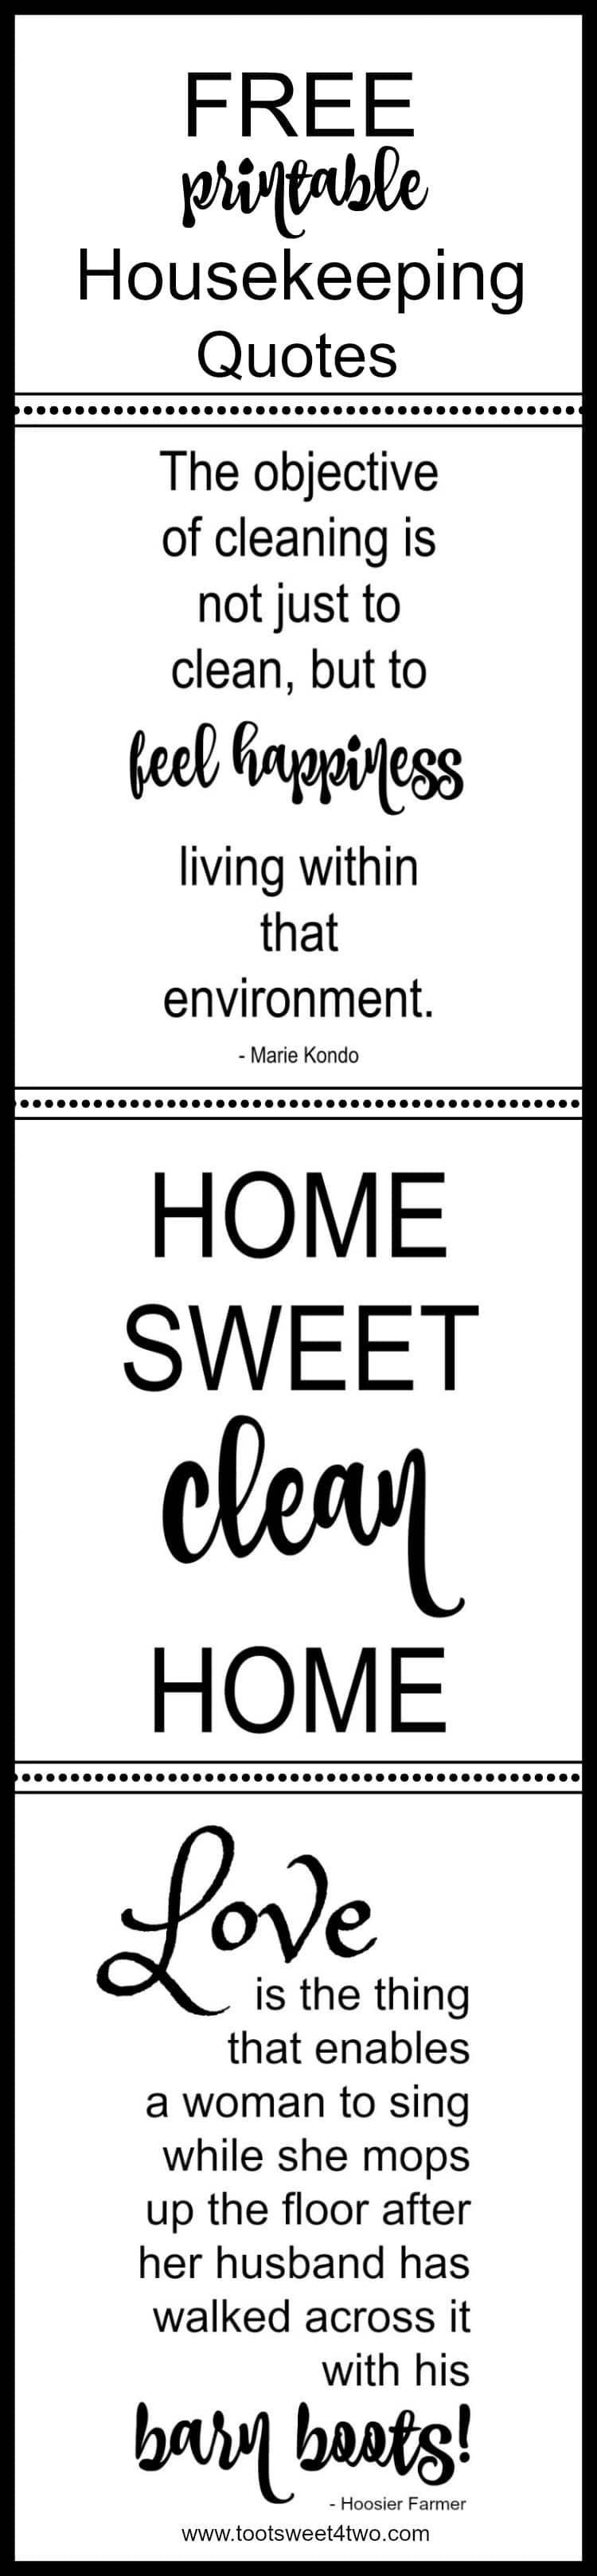 Housekeeping Quotes Why A Clean Home Influences A Healthy Mind And Body  Toot Sweet 4 Two